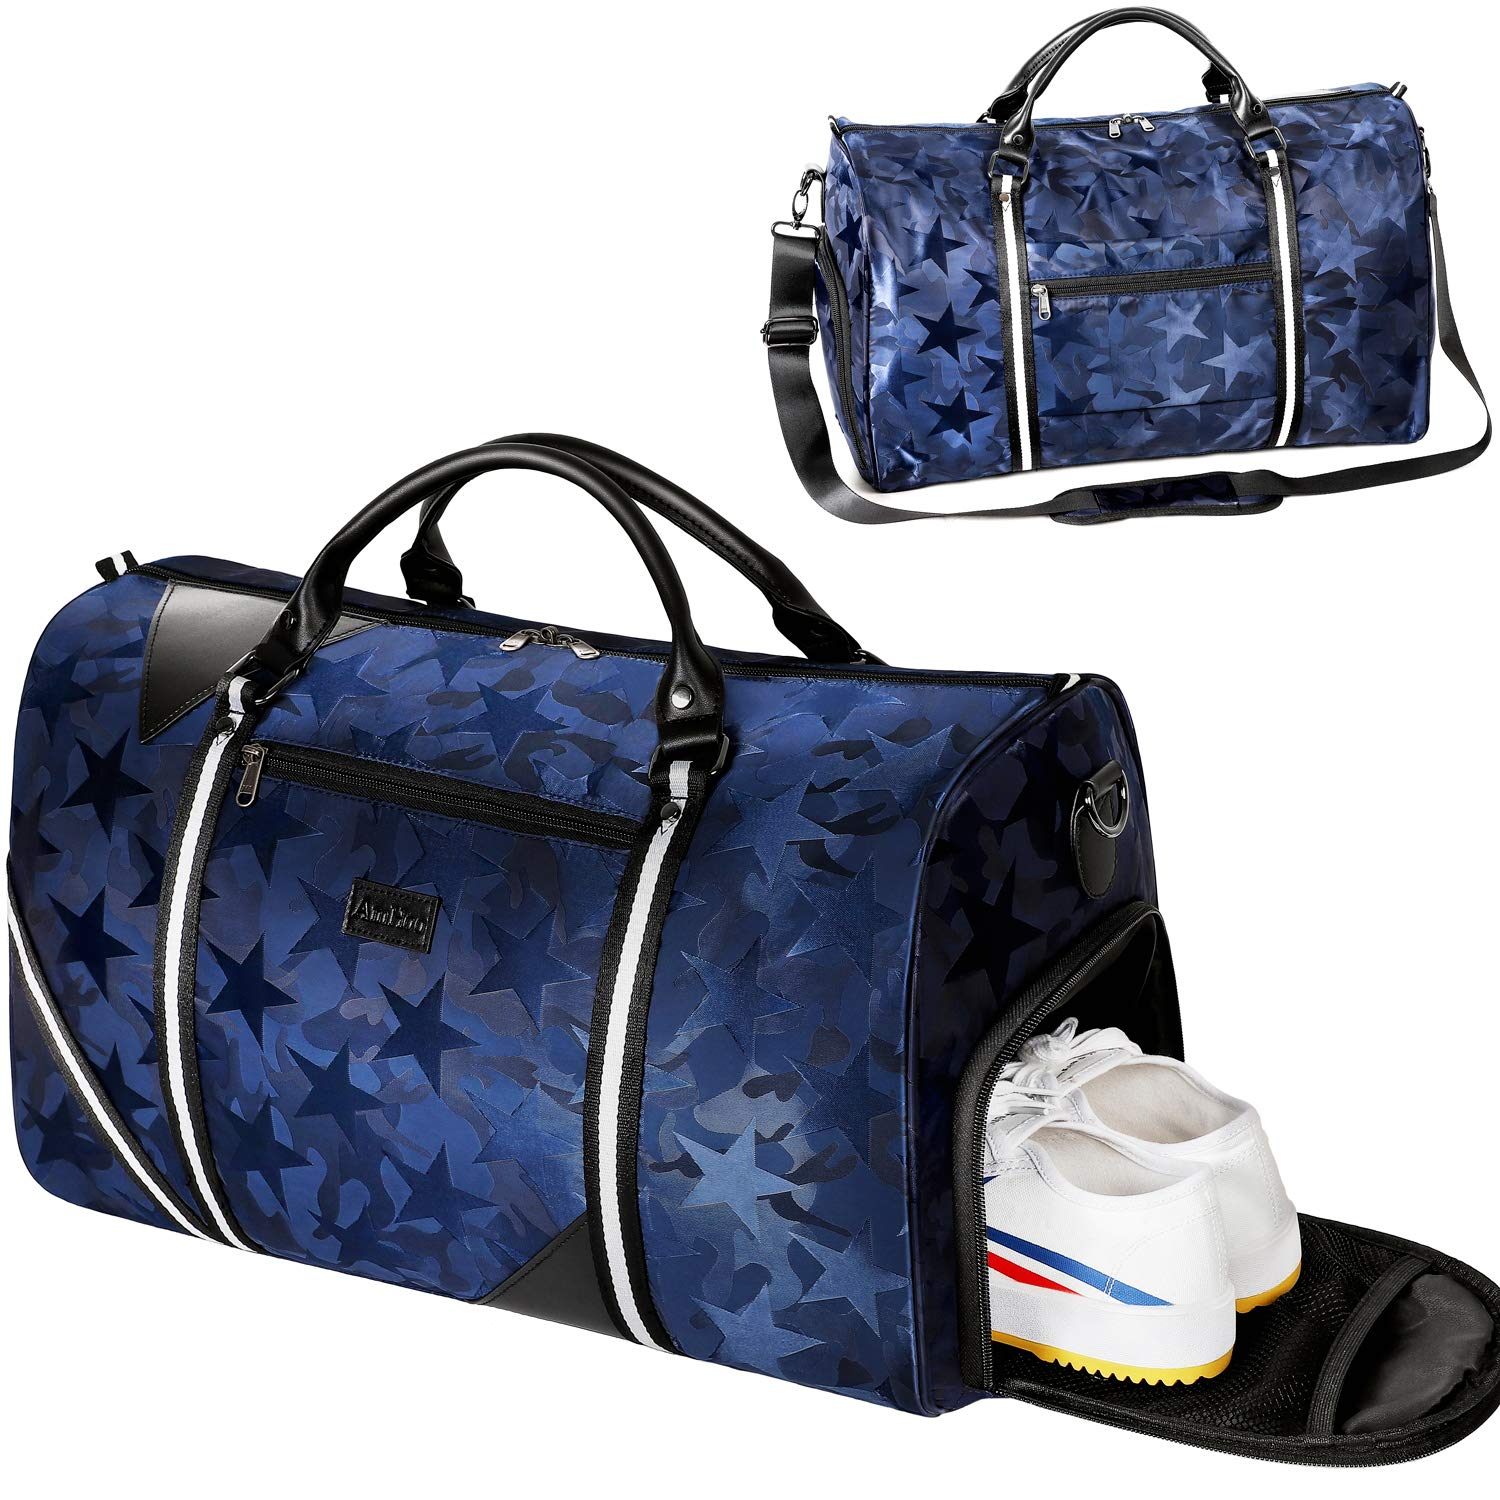 6a935a79832a AmHoo Travel Duffel Bag Waterproof Nylon Weekender Gym Bag + Isolated Shoe  Pocket +Inner TPU Moisturizing Bag For Women/Men